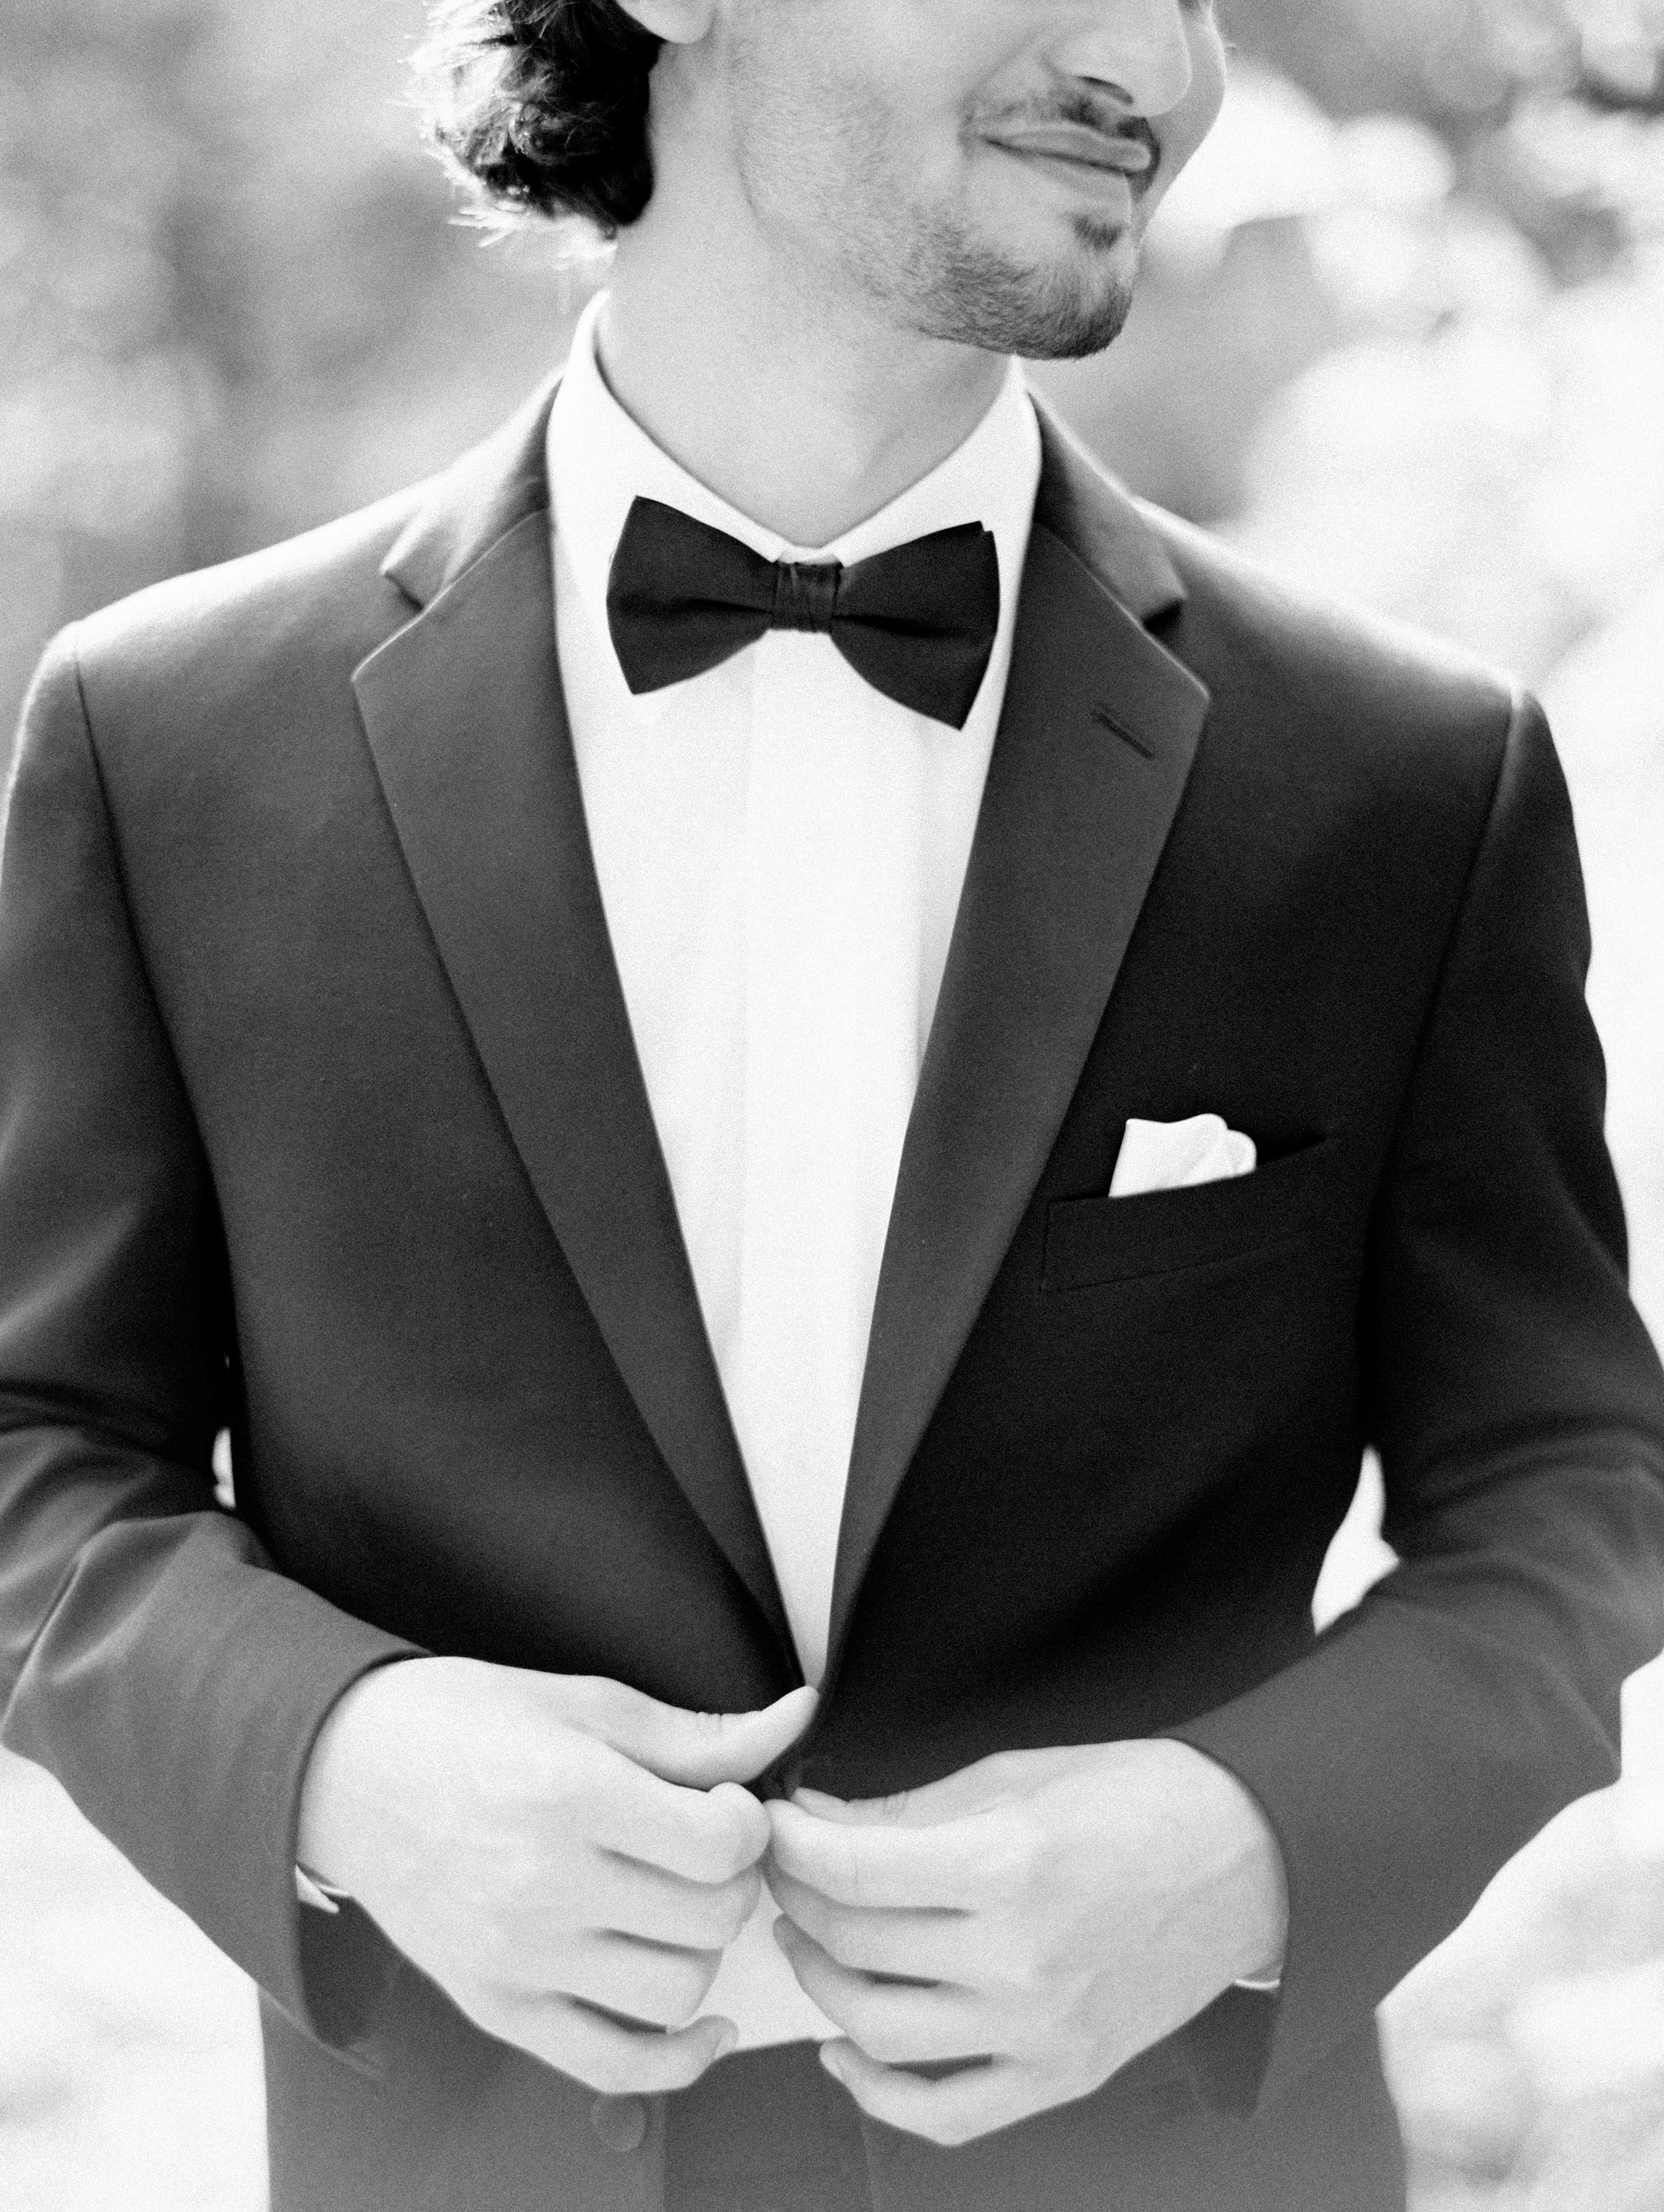 Fashion, Real Weddings, Wedding Style, Men's Formal Wear, West Coast Real Weddings, Garden Real Weddings, Garden Weddings, Romantic Real Weddings, Romantic Weddings